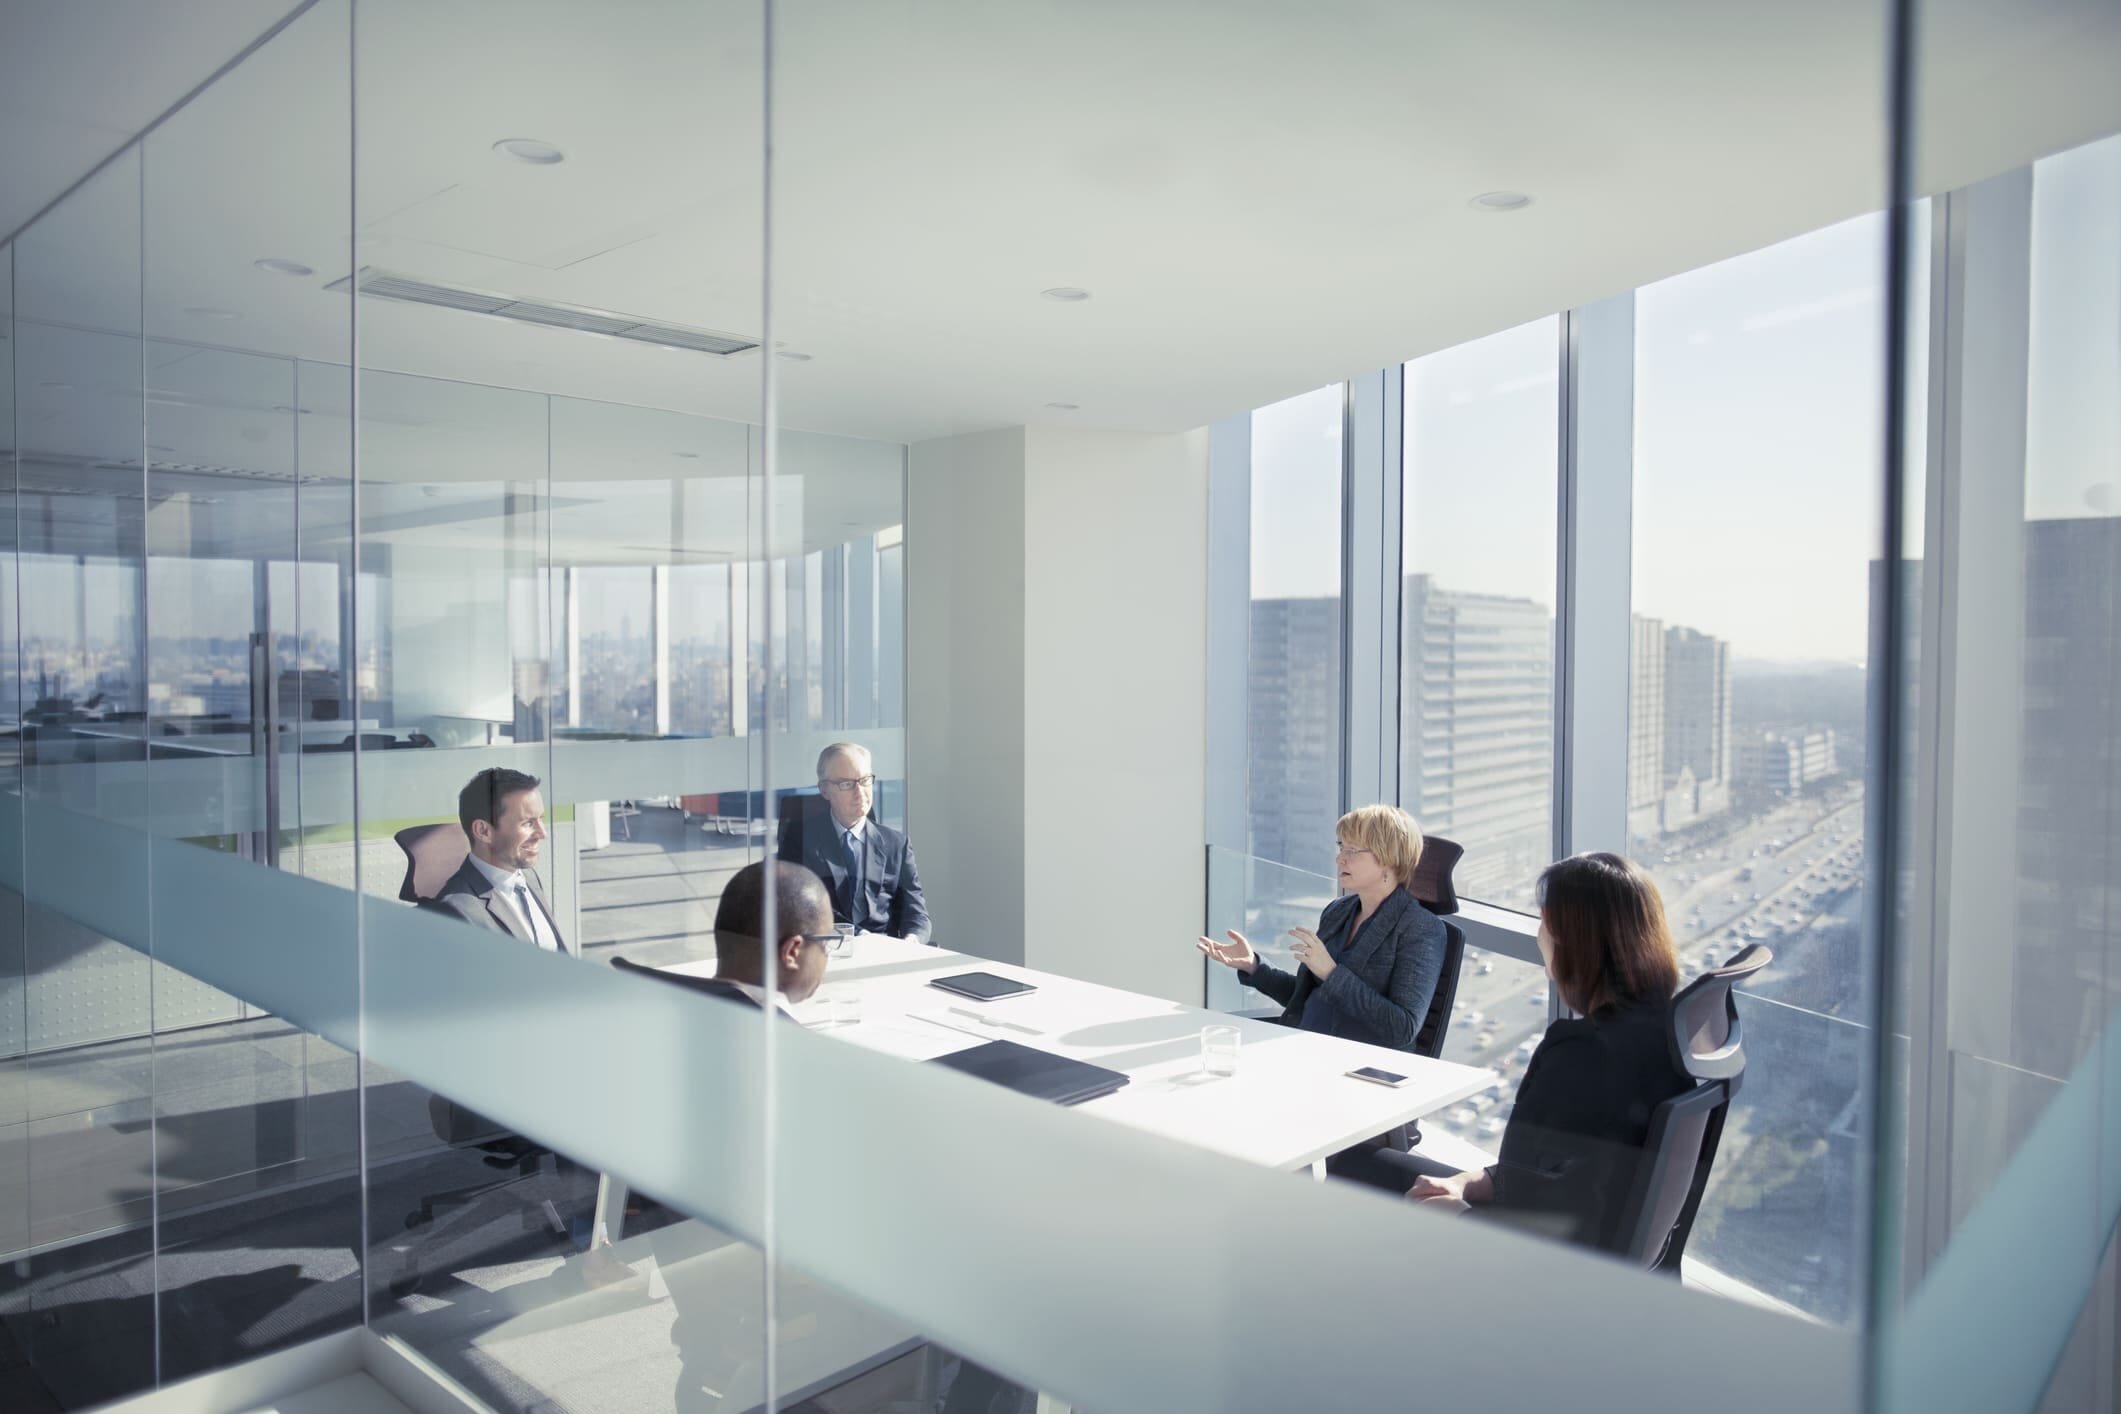 Meeting in a modern glass wall boardroom